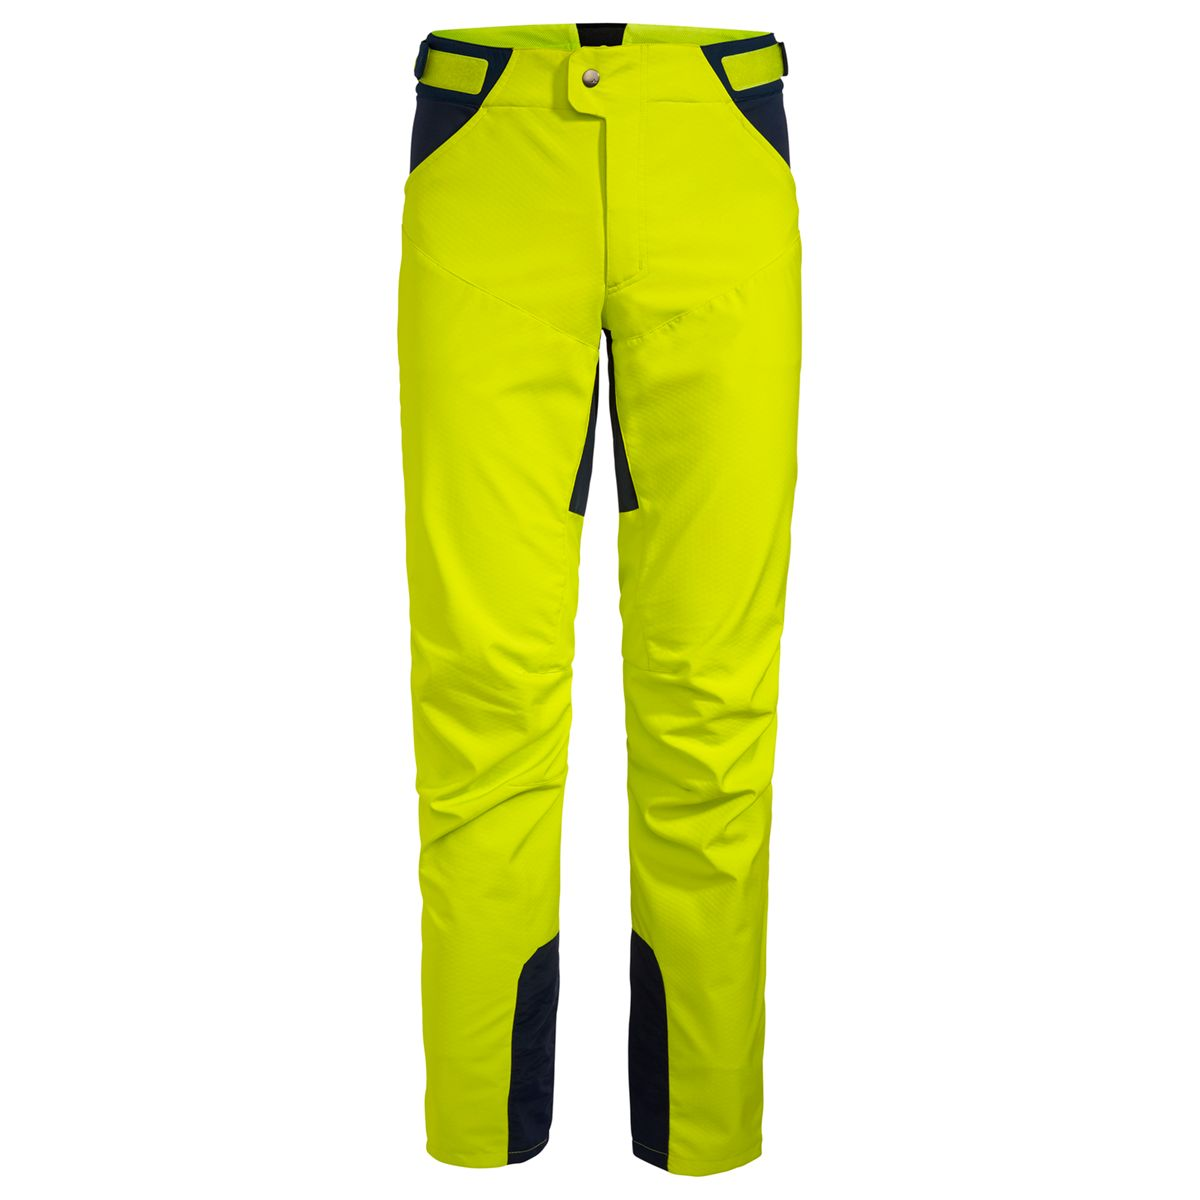 QIMSA II softshell trousers